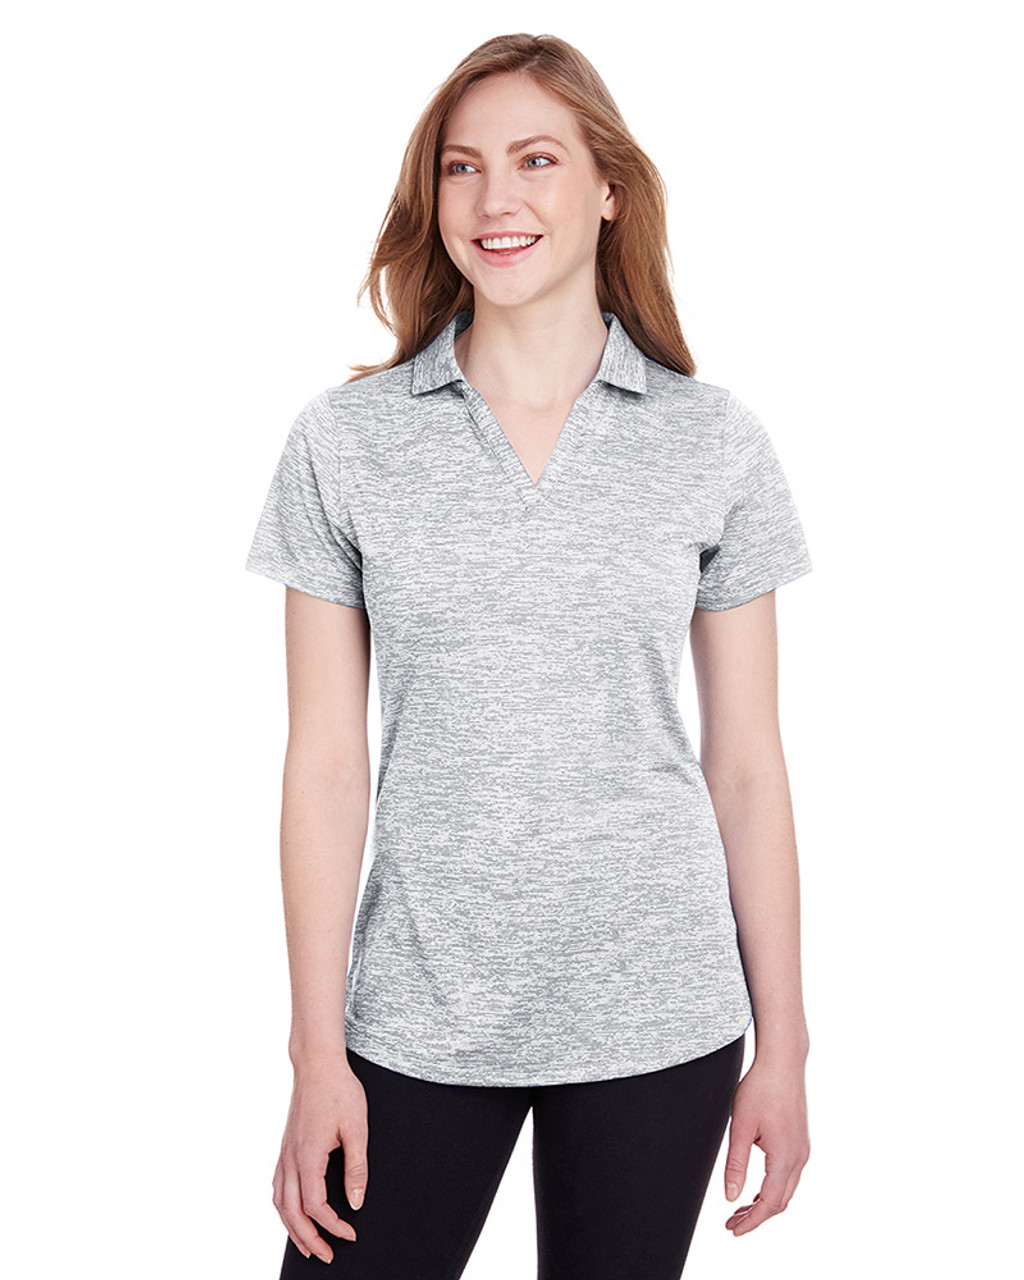 Bright White - 596802 Puma Golf Ladies' Icon Heather Polo | Blankclothing.ca